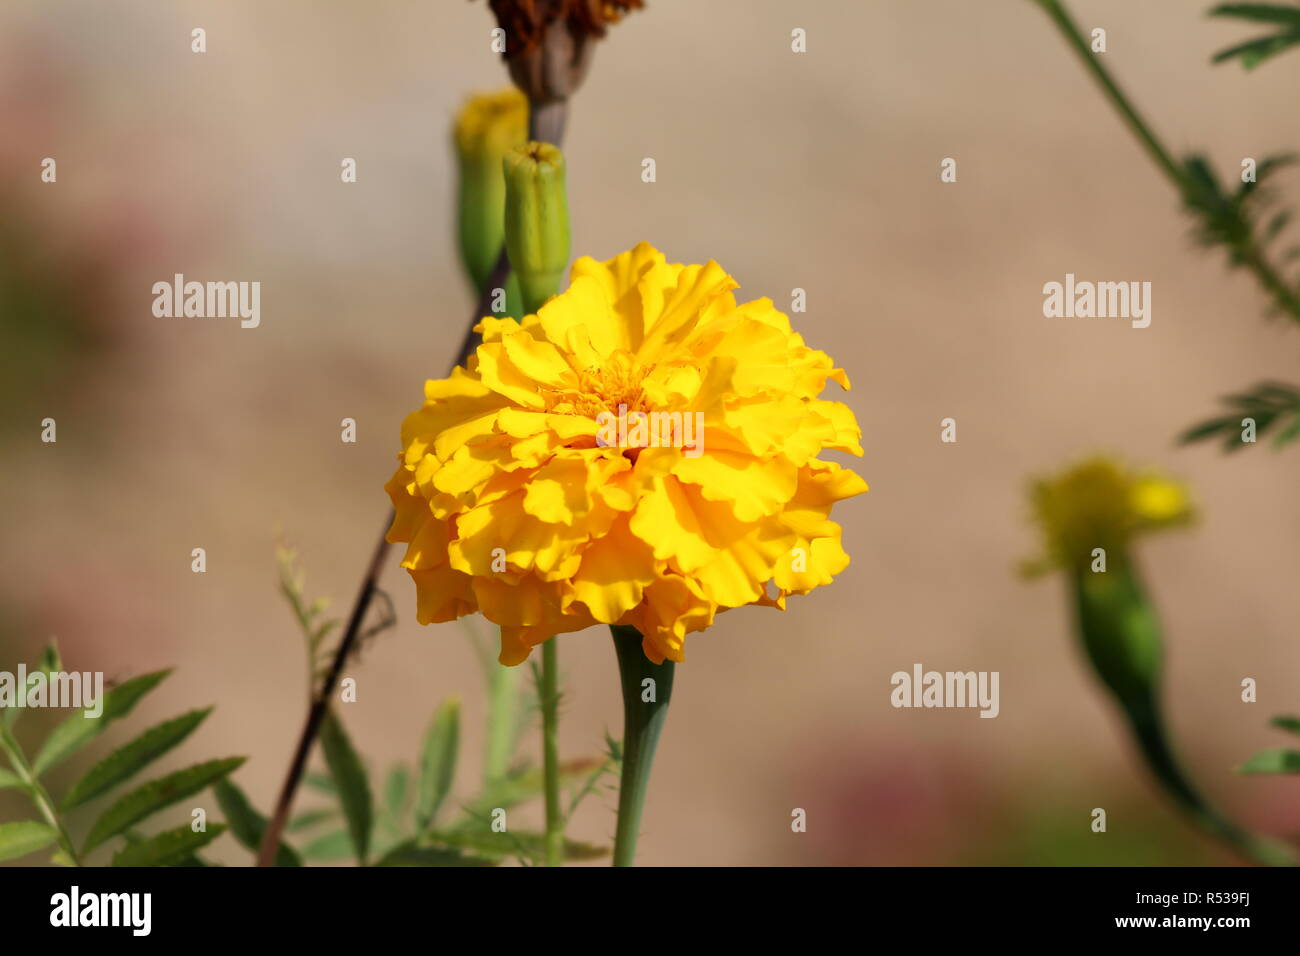 Mexican marigold or Tagetes erecta or Aztec marigold or African marigold or Big marigold herbaceous annual plant with large flowerhead - Stock Image